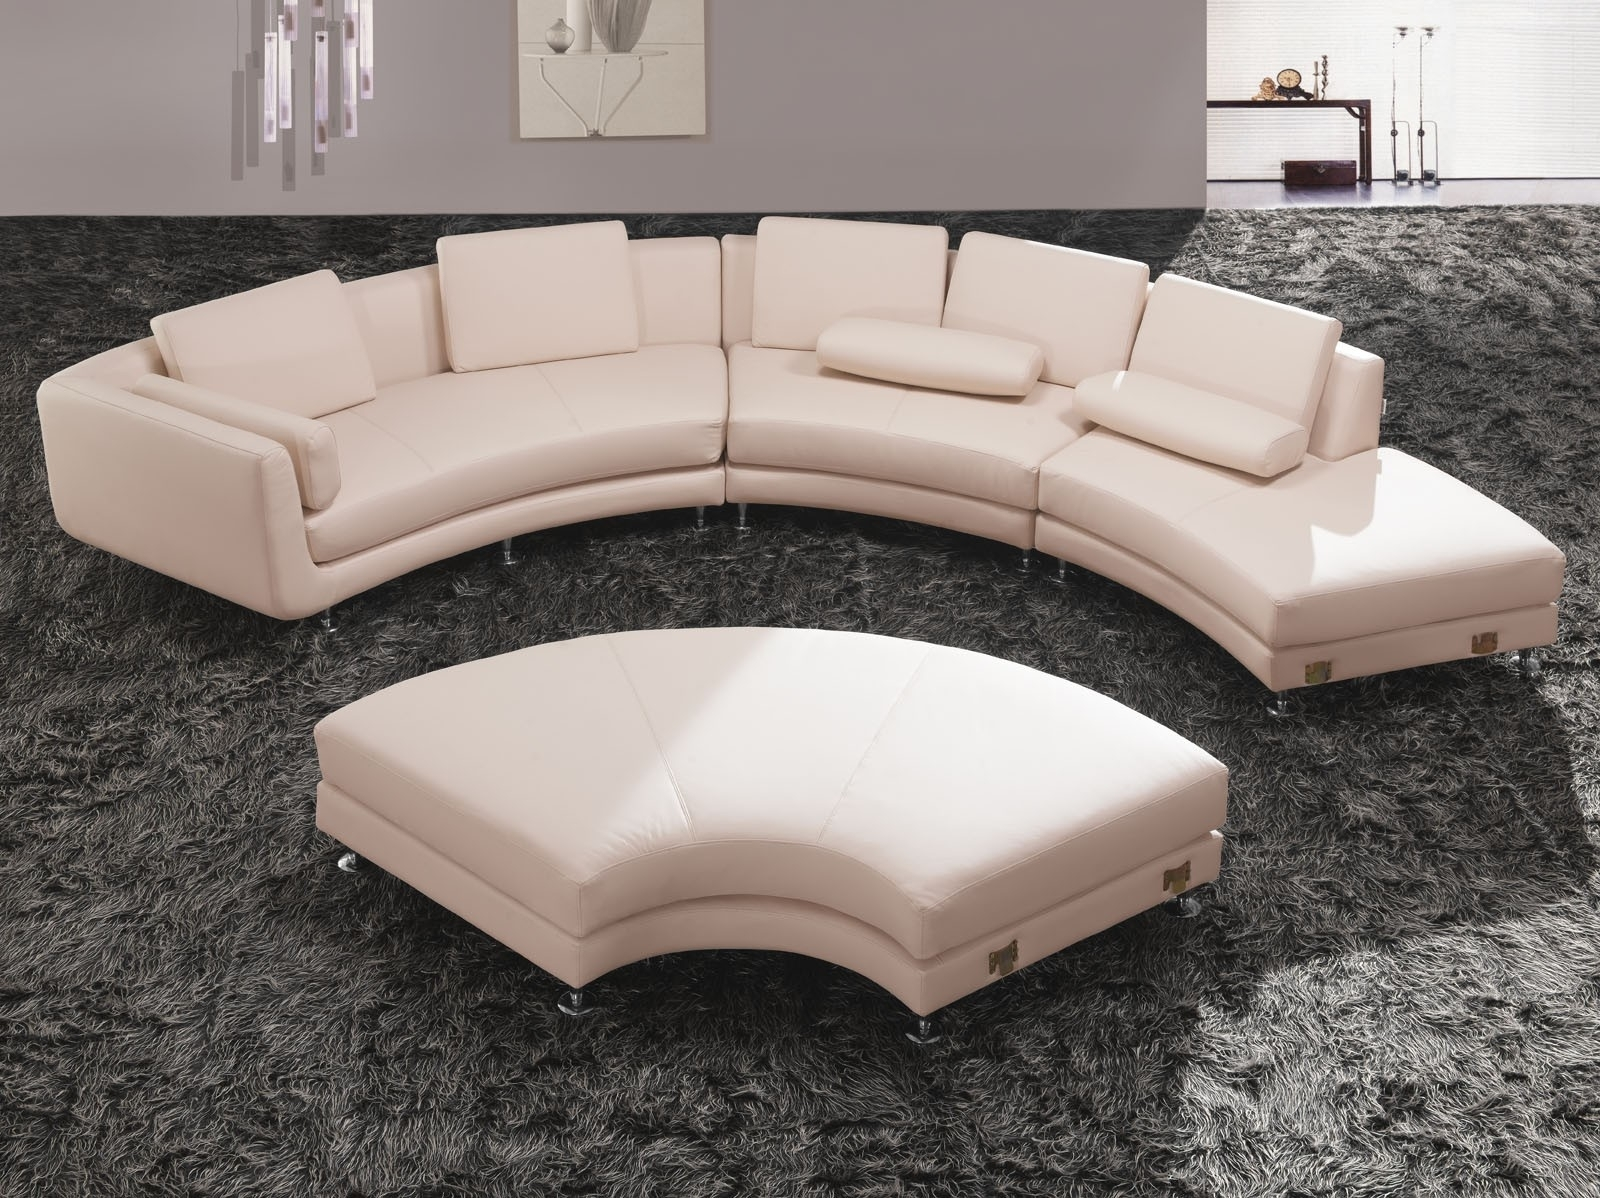 Sofa : Glamorous Round Sectional Sofa Bed Curved Leather Tufted intended for Circular Sectional Sofas (Image 9 of 10)